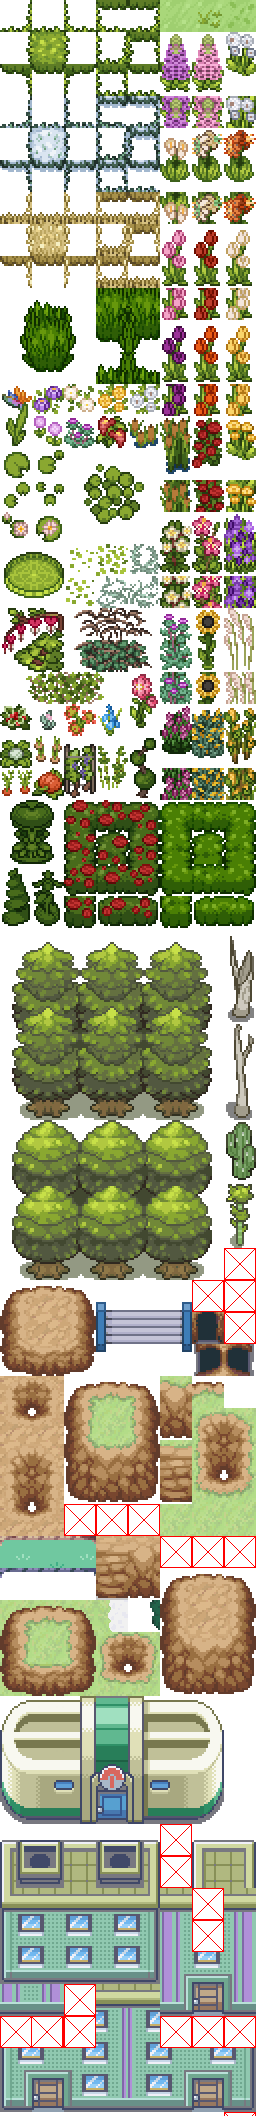 Forest planet.png